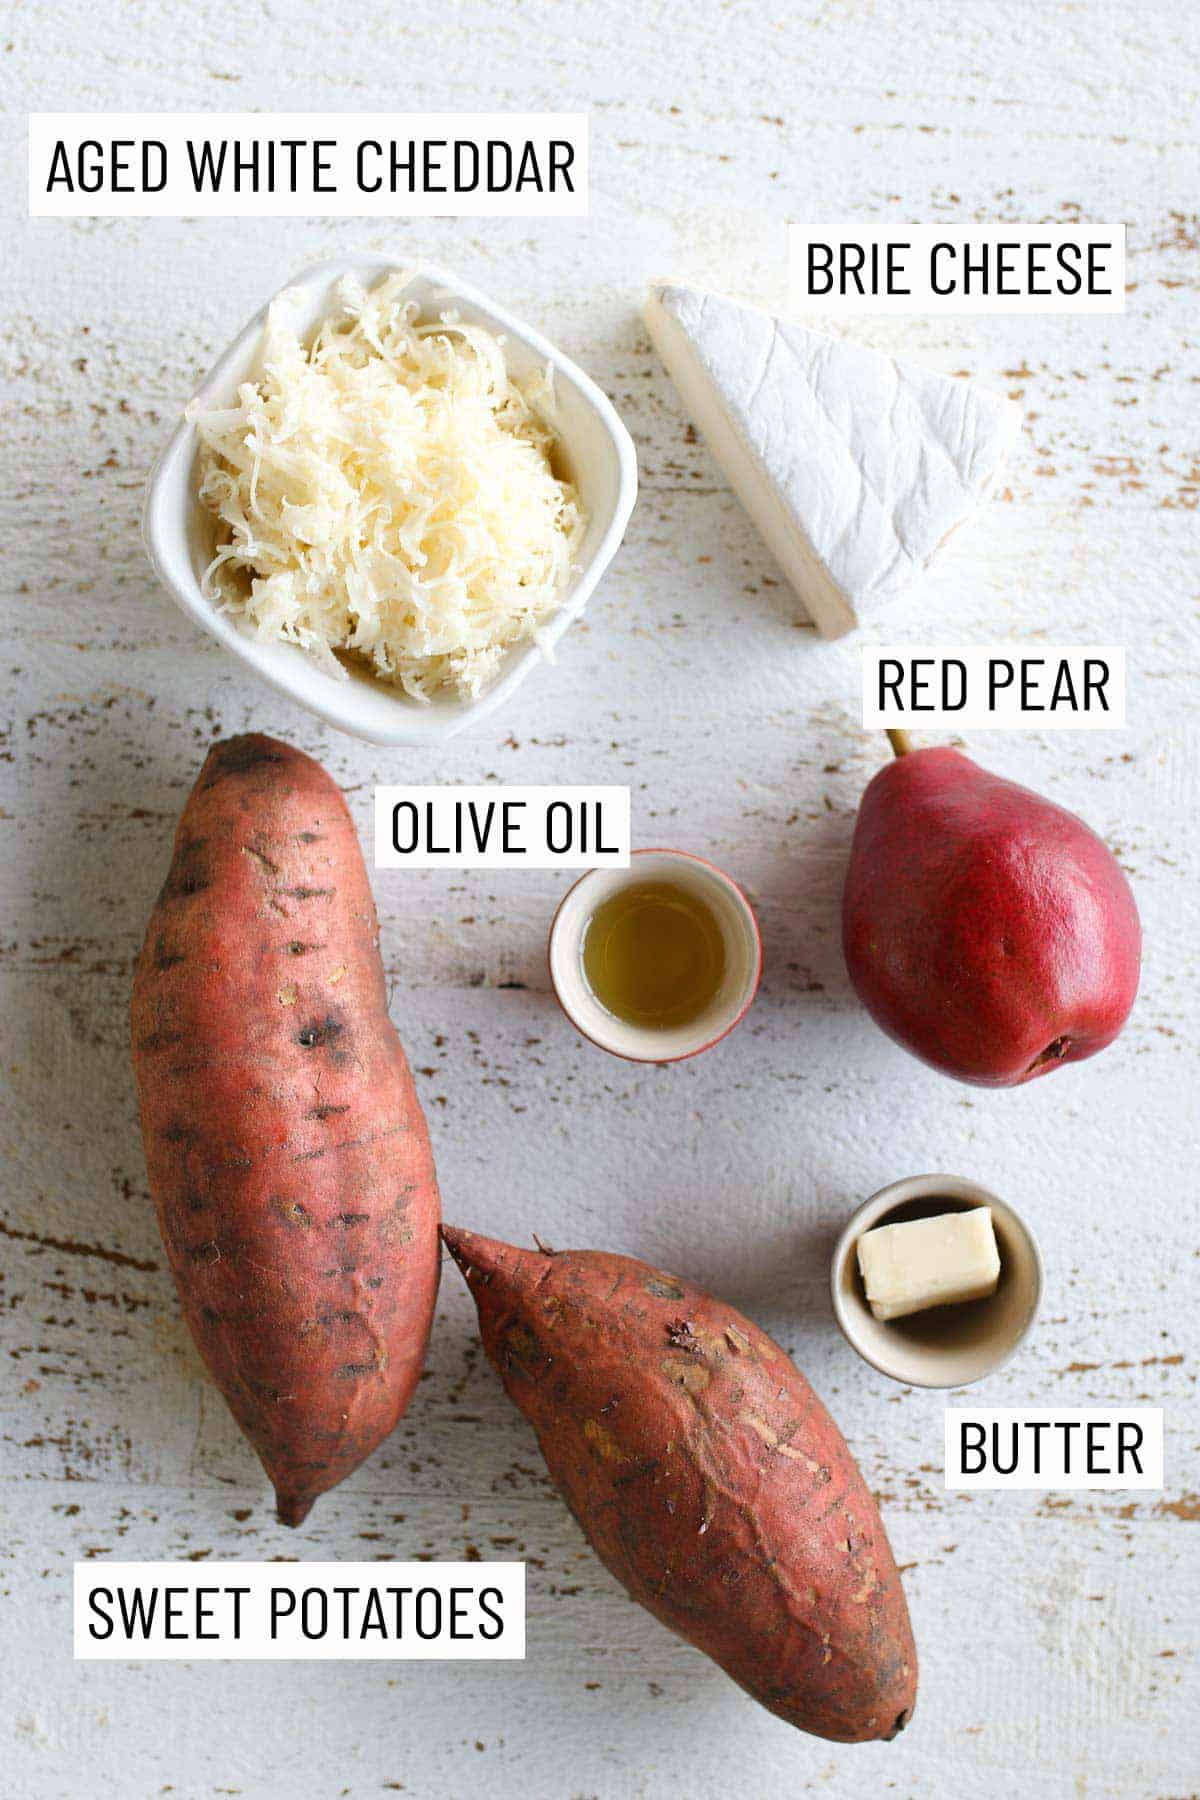 Overhead image of ingredients needed to make the recipe: sweet potatoes, aged white cheddar, bri cheese, olive oil, red pear, and butter.